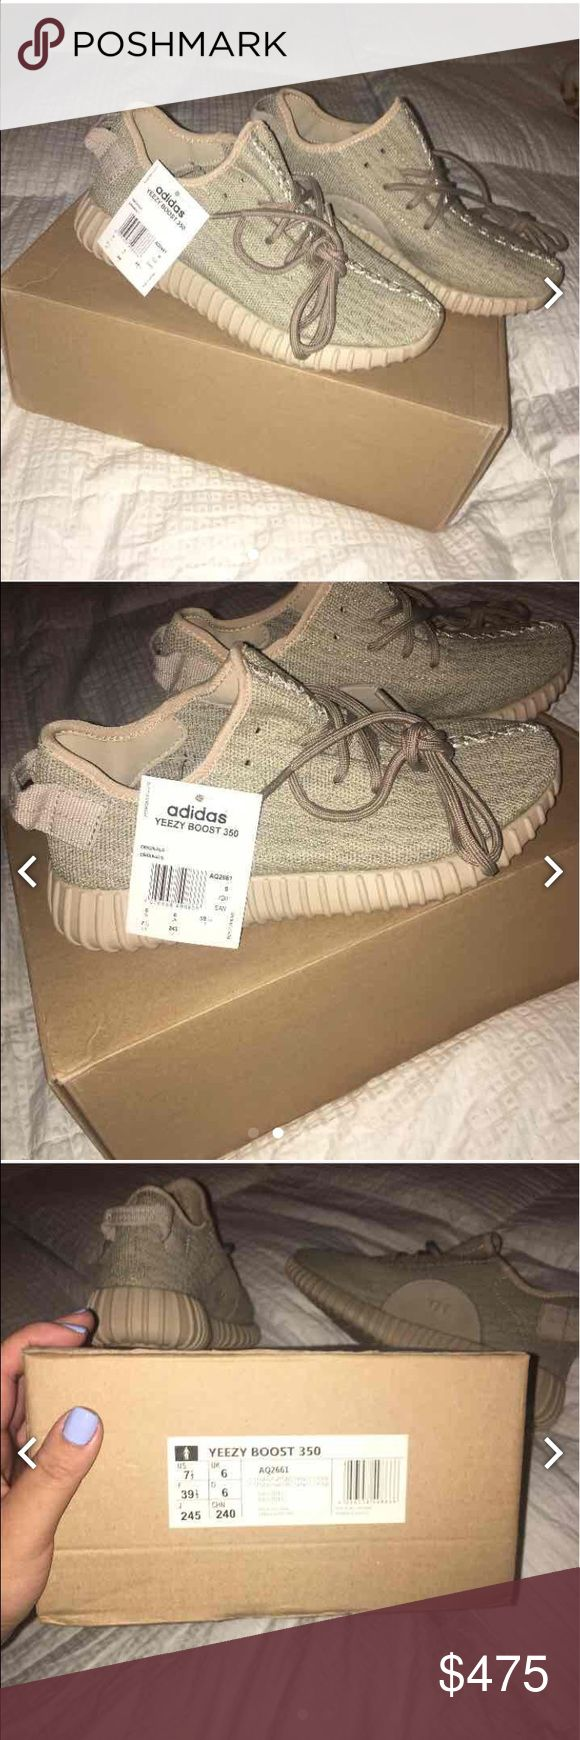 Yeezy boost 350 oxford tan 100% authentic. Ex BF won it in a raffle. Never used. Tried it on once, half a size too big. Size 7.5 fits like an 8. Will take more pictures for proof of authenticity. Also on Mercari. Yeezy Shoes Athletic Shoes